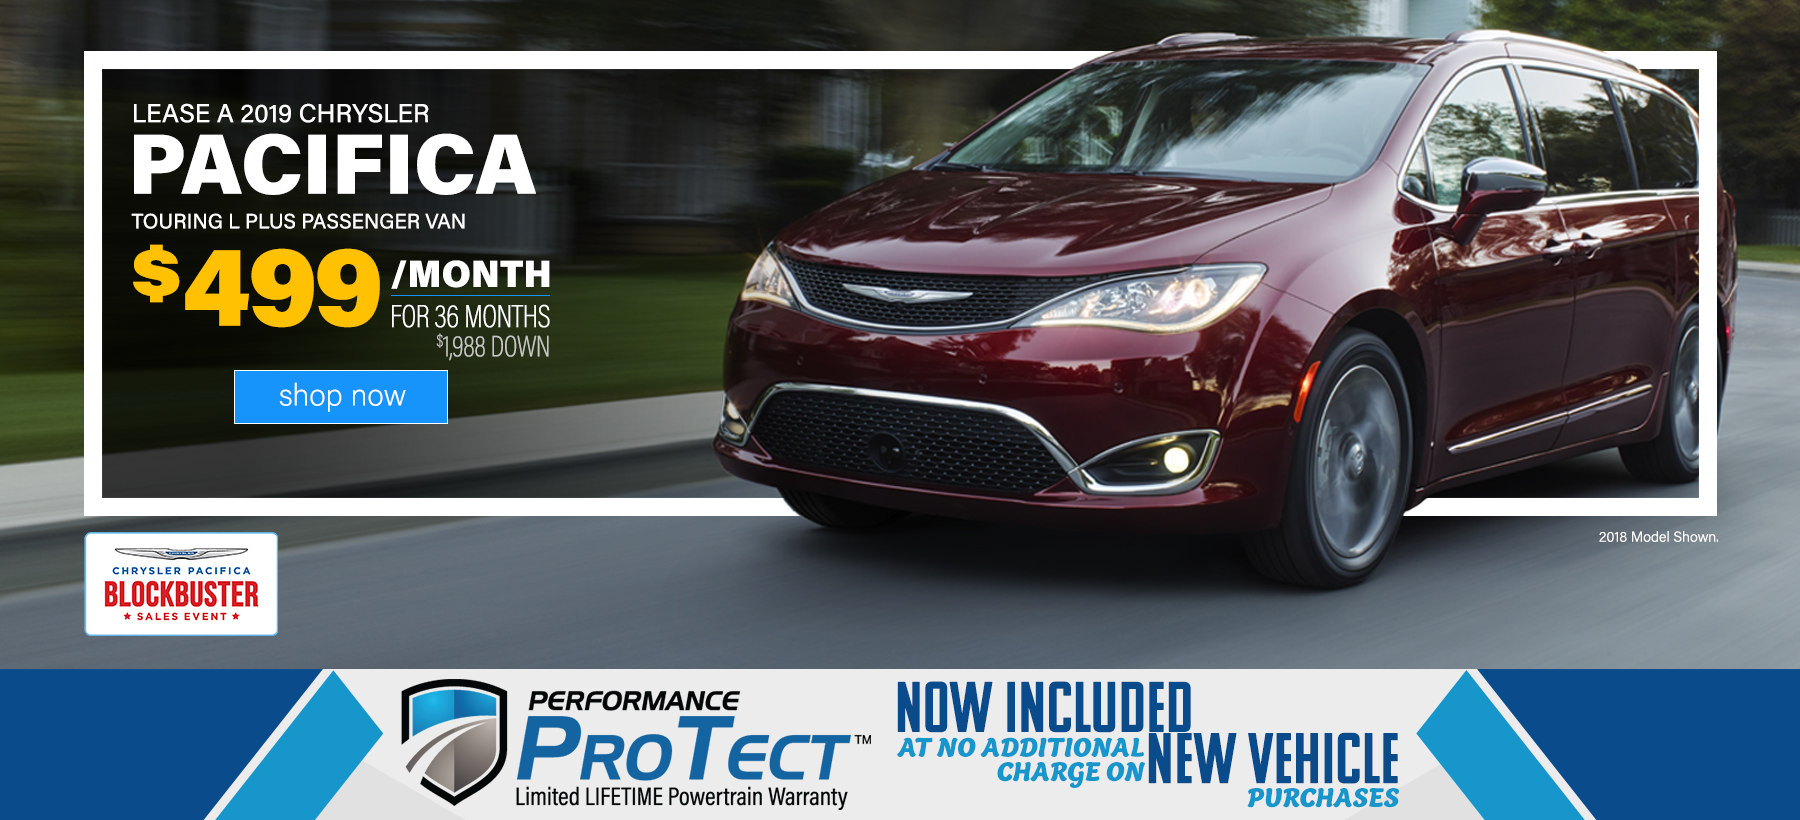 2019-chrysler-pacifica-lease-dayton-oh